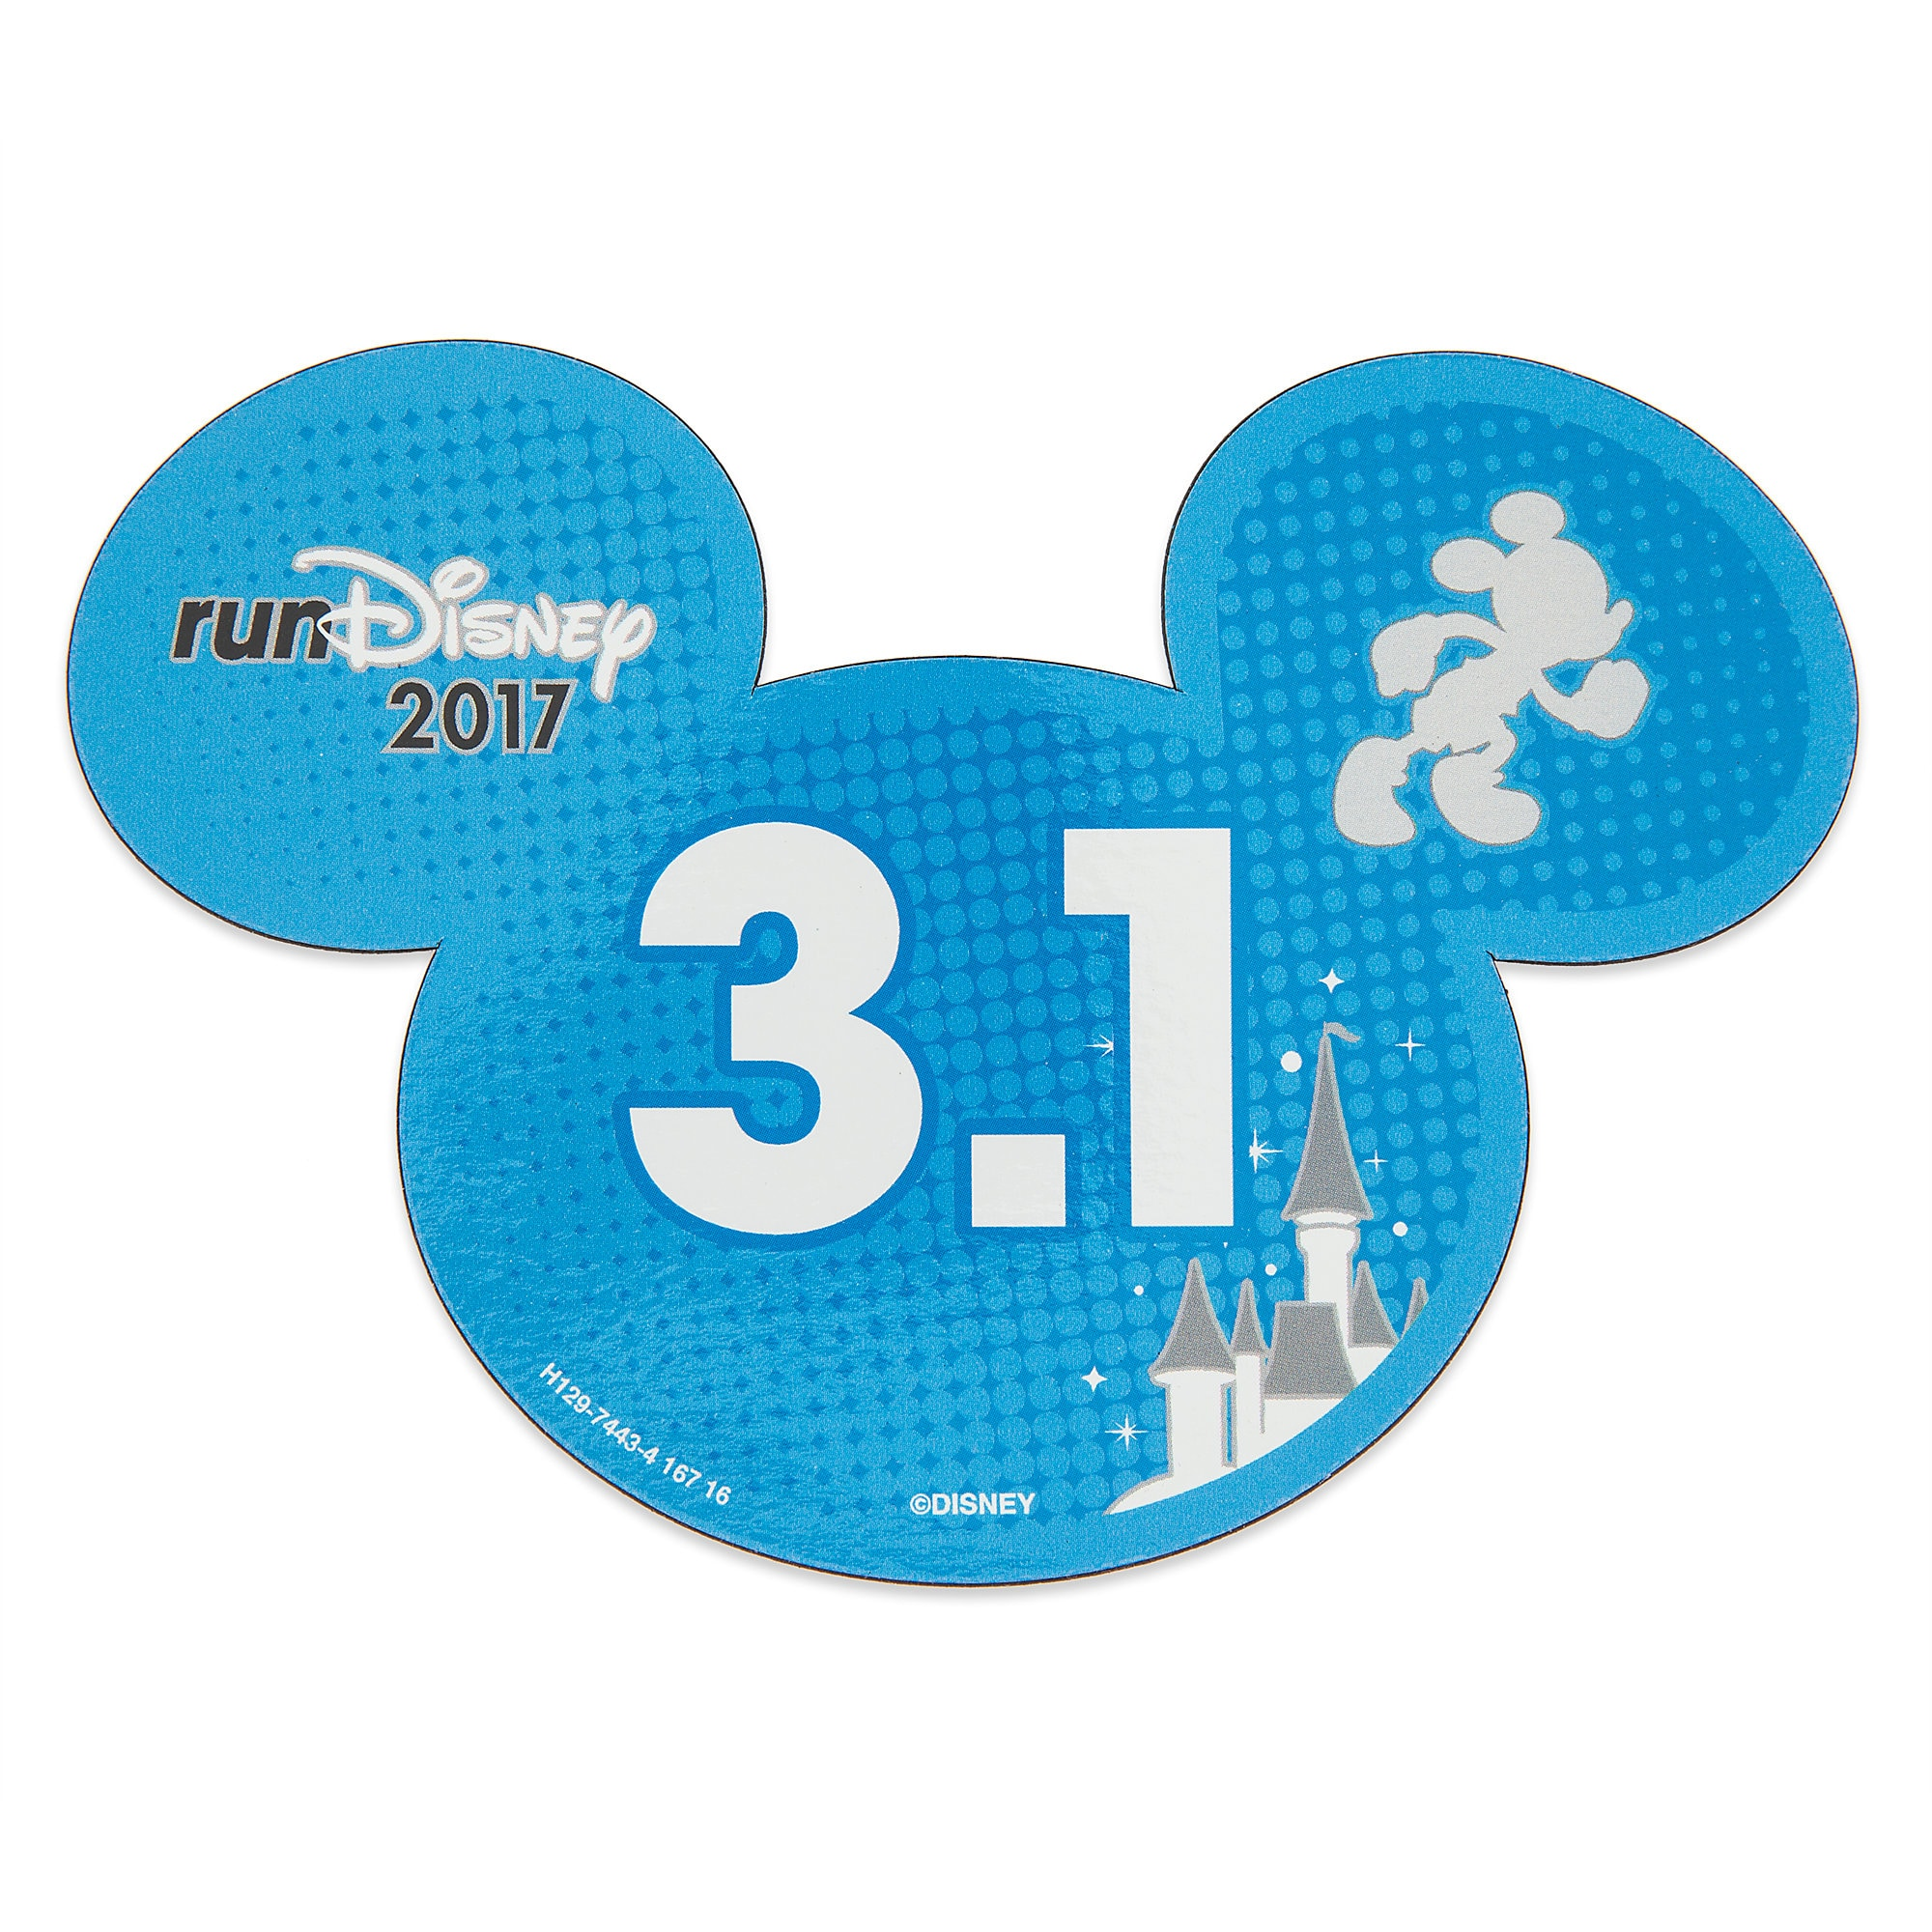 Mickey Mouse runDisney 2017 Magnet - 3.1